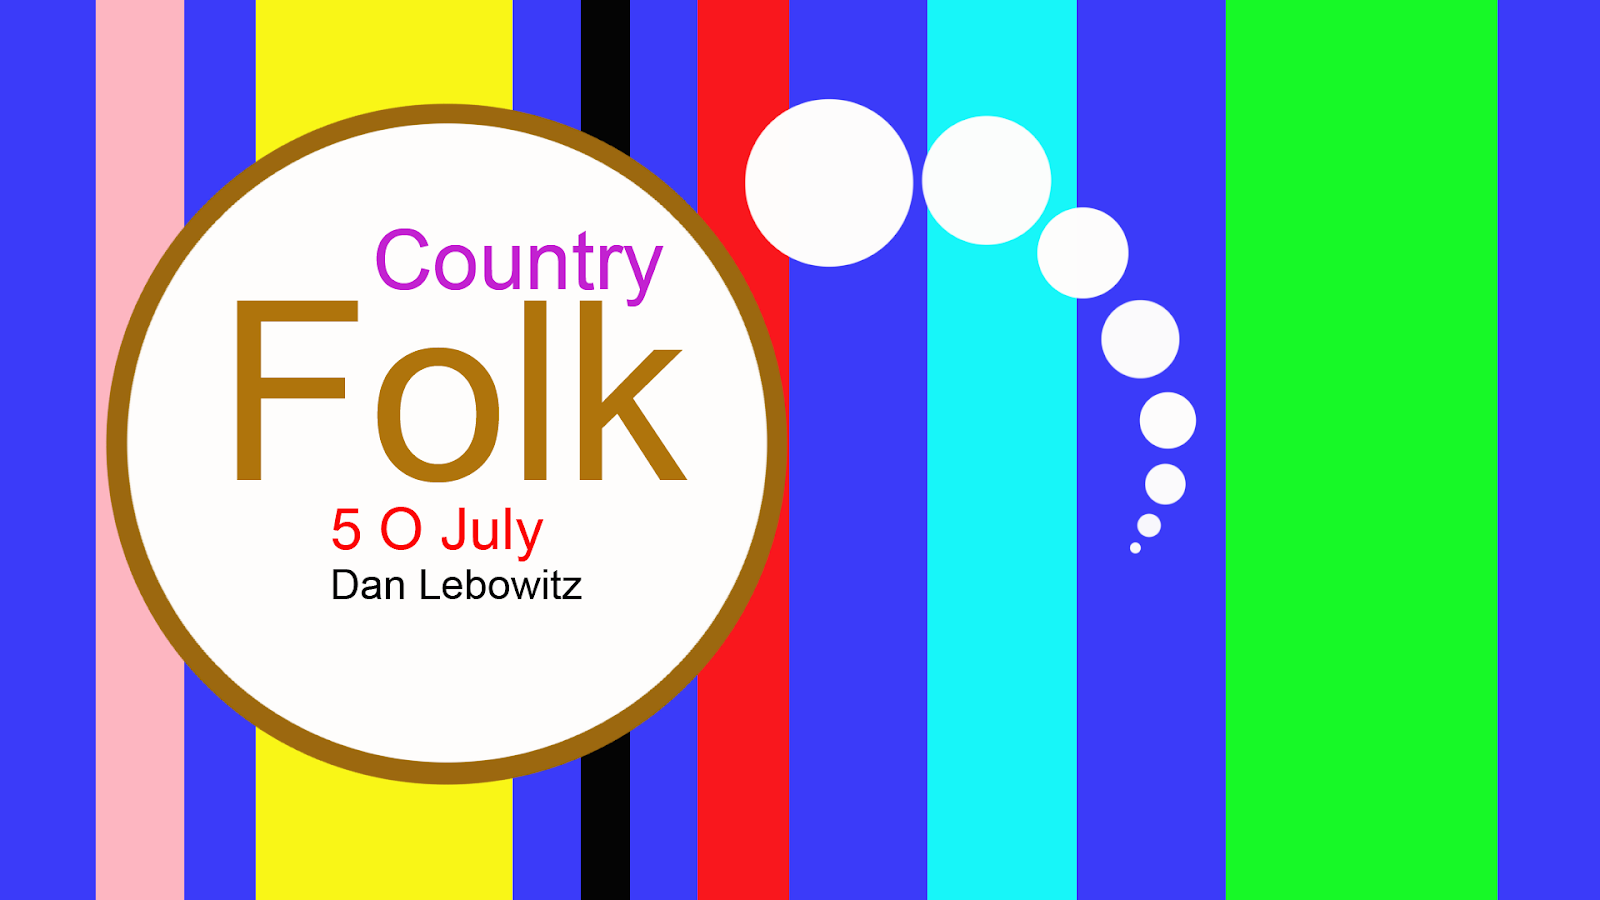 ♫ Country ve Folk Müzikleri, 20 Şarkı, 45 dk., 20 Songs, 45 Minutes, Country and Folk Music